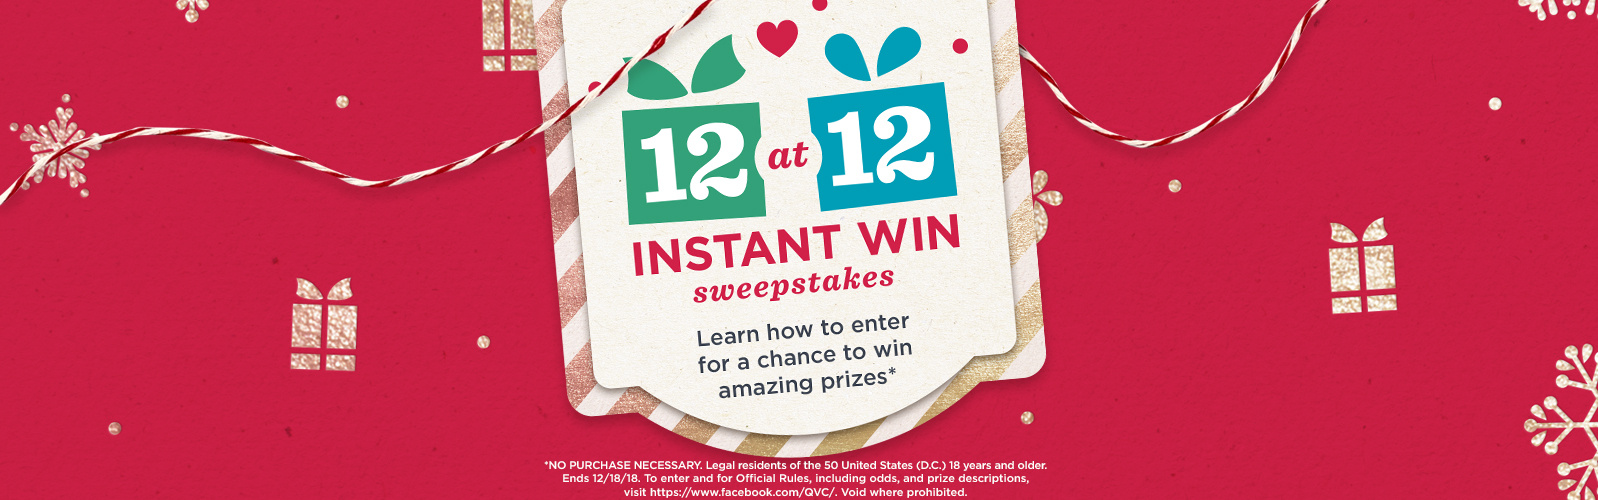 12 at 12 Instant Win Sweepstakes — Learn how to enter for a chance to win amazing prizes — NO PURCHASE NECESSARY. Legal residents of the 50 United States (D.C.) 18 years and older. Ends 12/18/18. To enter and for Official Rules, including odds, and prize descriptions, visit https://www.facebook.com/QVC/. Void where prohibited.